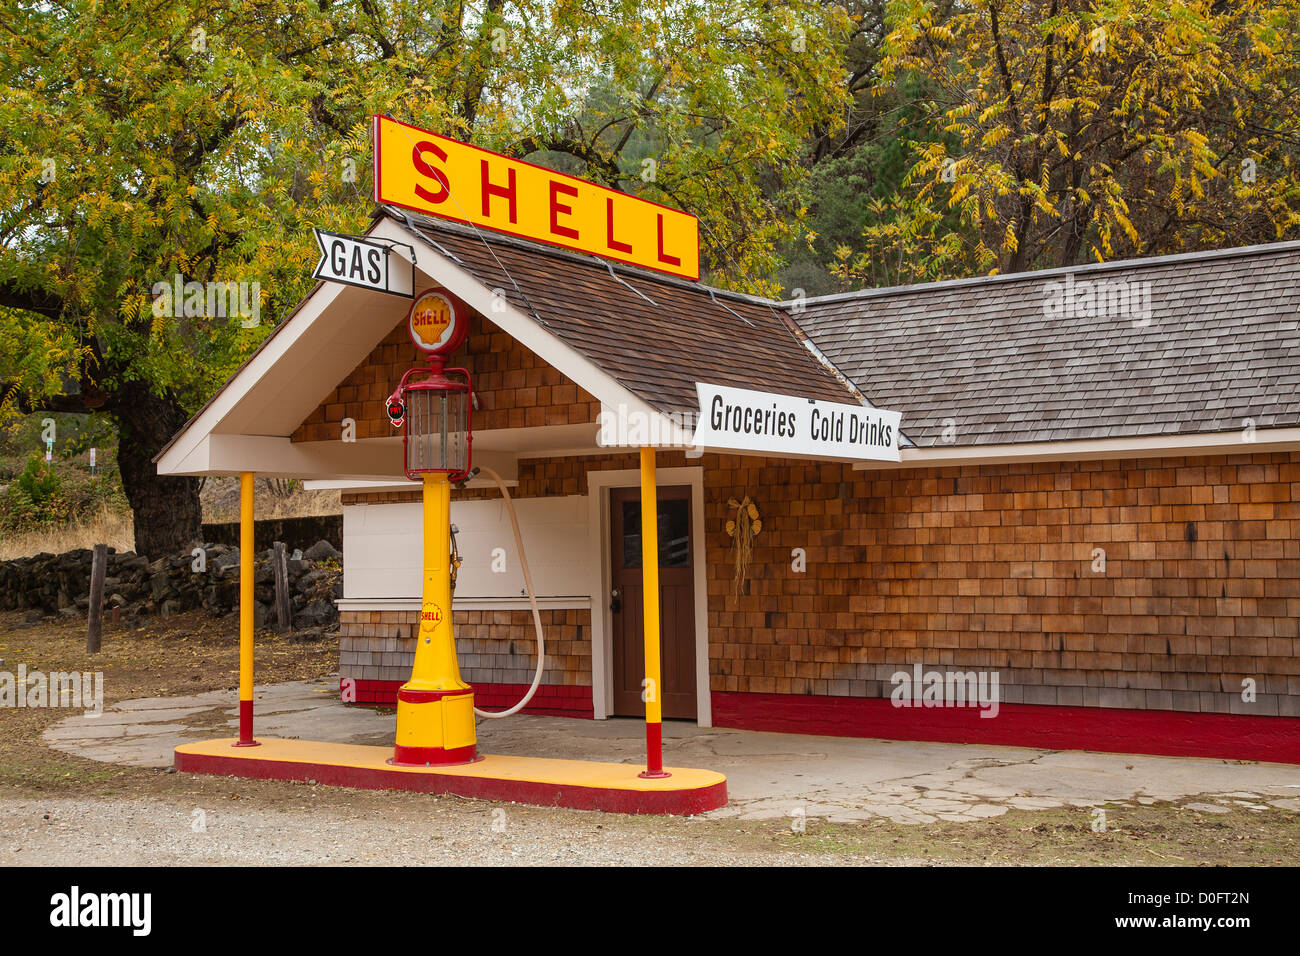 Restored old time Shell gasoline station in South Yuba River State Park, California. Stock Photo